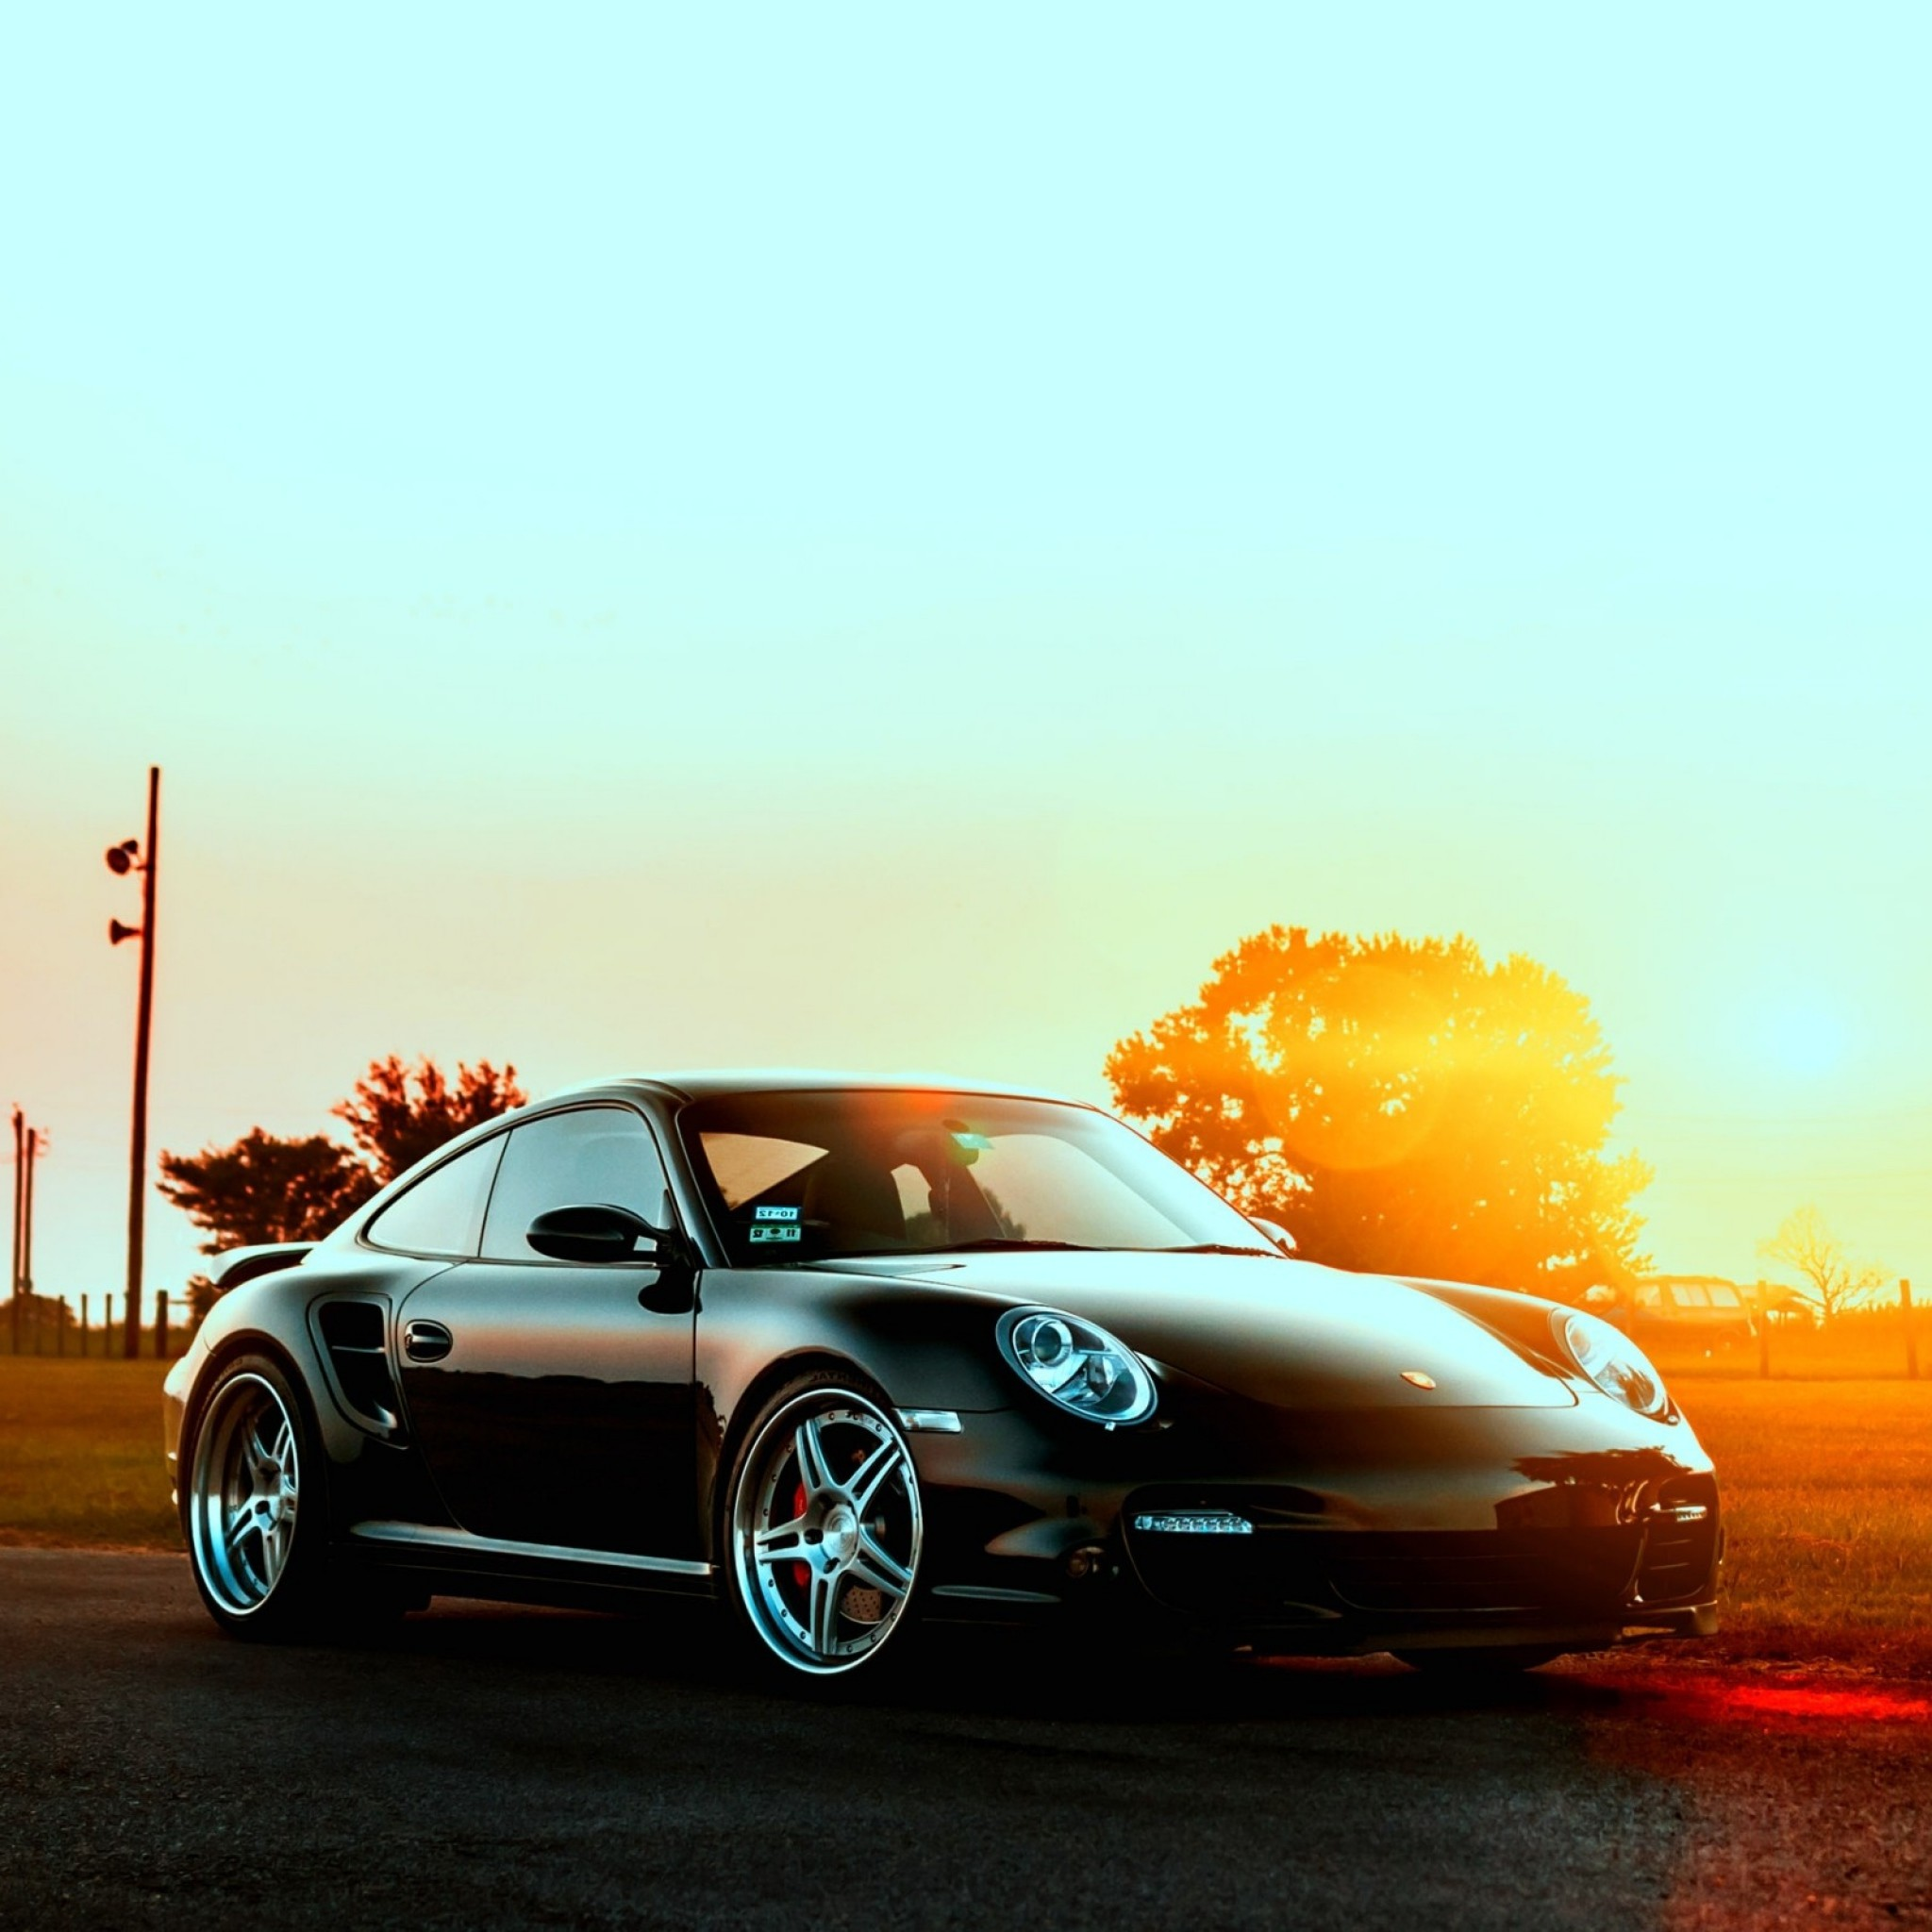 Old Car Images Hd: Die 68+ Besten Porsche Wallpapers